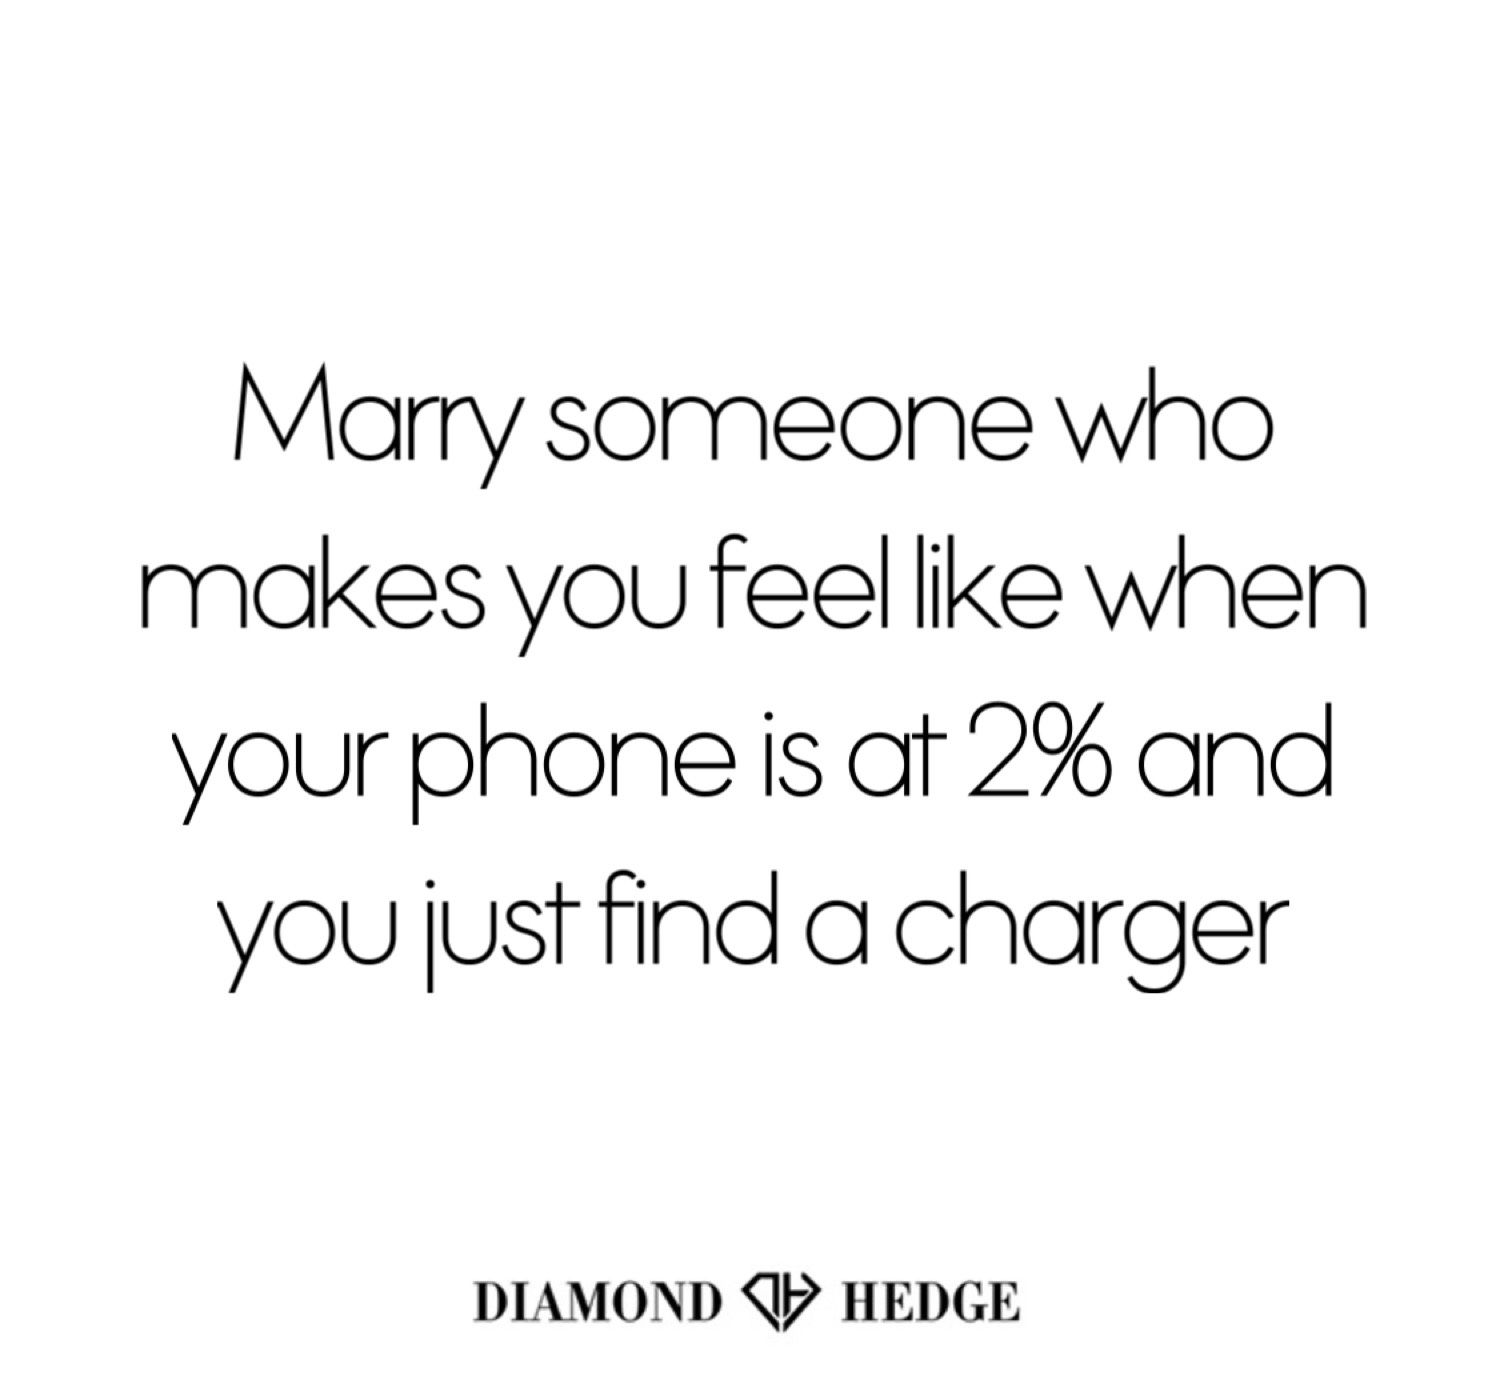 Marry someone who makes you feel like when your phone is at 2% and you just find a charger 😊  DiamondHedge.com #lovequotes